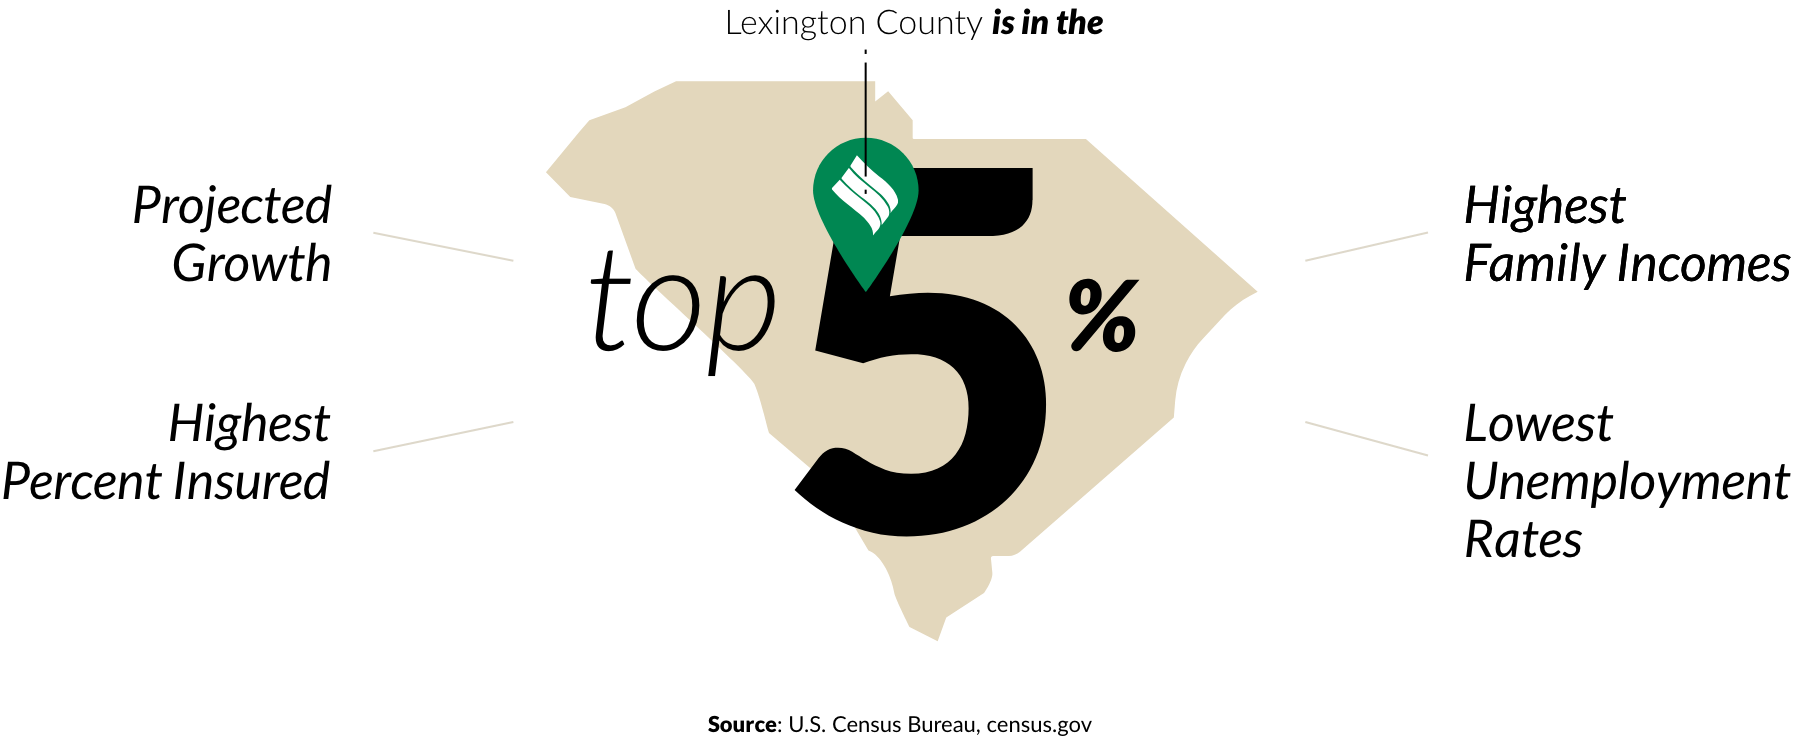 Infographic showing Lexington County as top 5% in South Carolina for projected growth, highest percent insured, lowest unemployment rates, and highest family incomes.